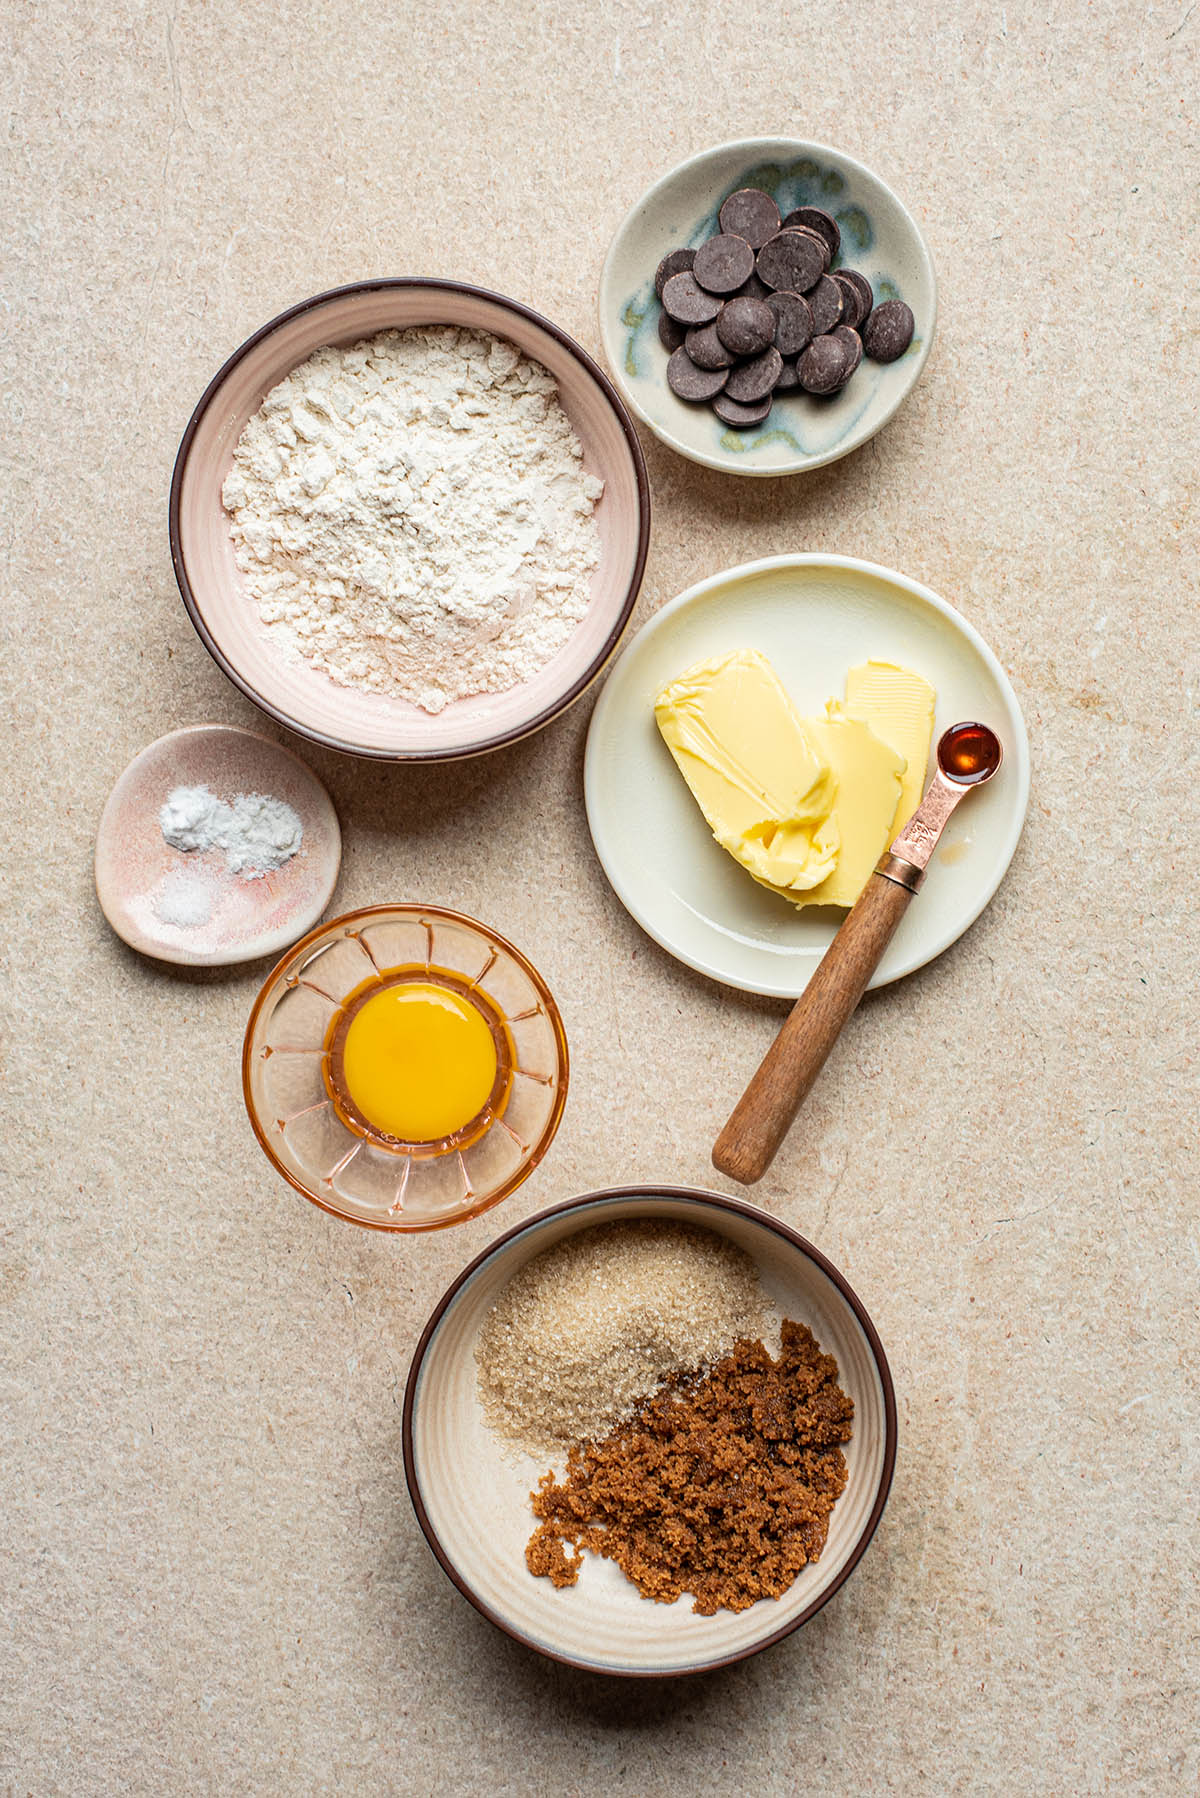 Overhead image of chocolate chip cookie ingredients laid out in small bowls on a stone surface.